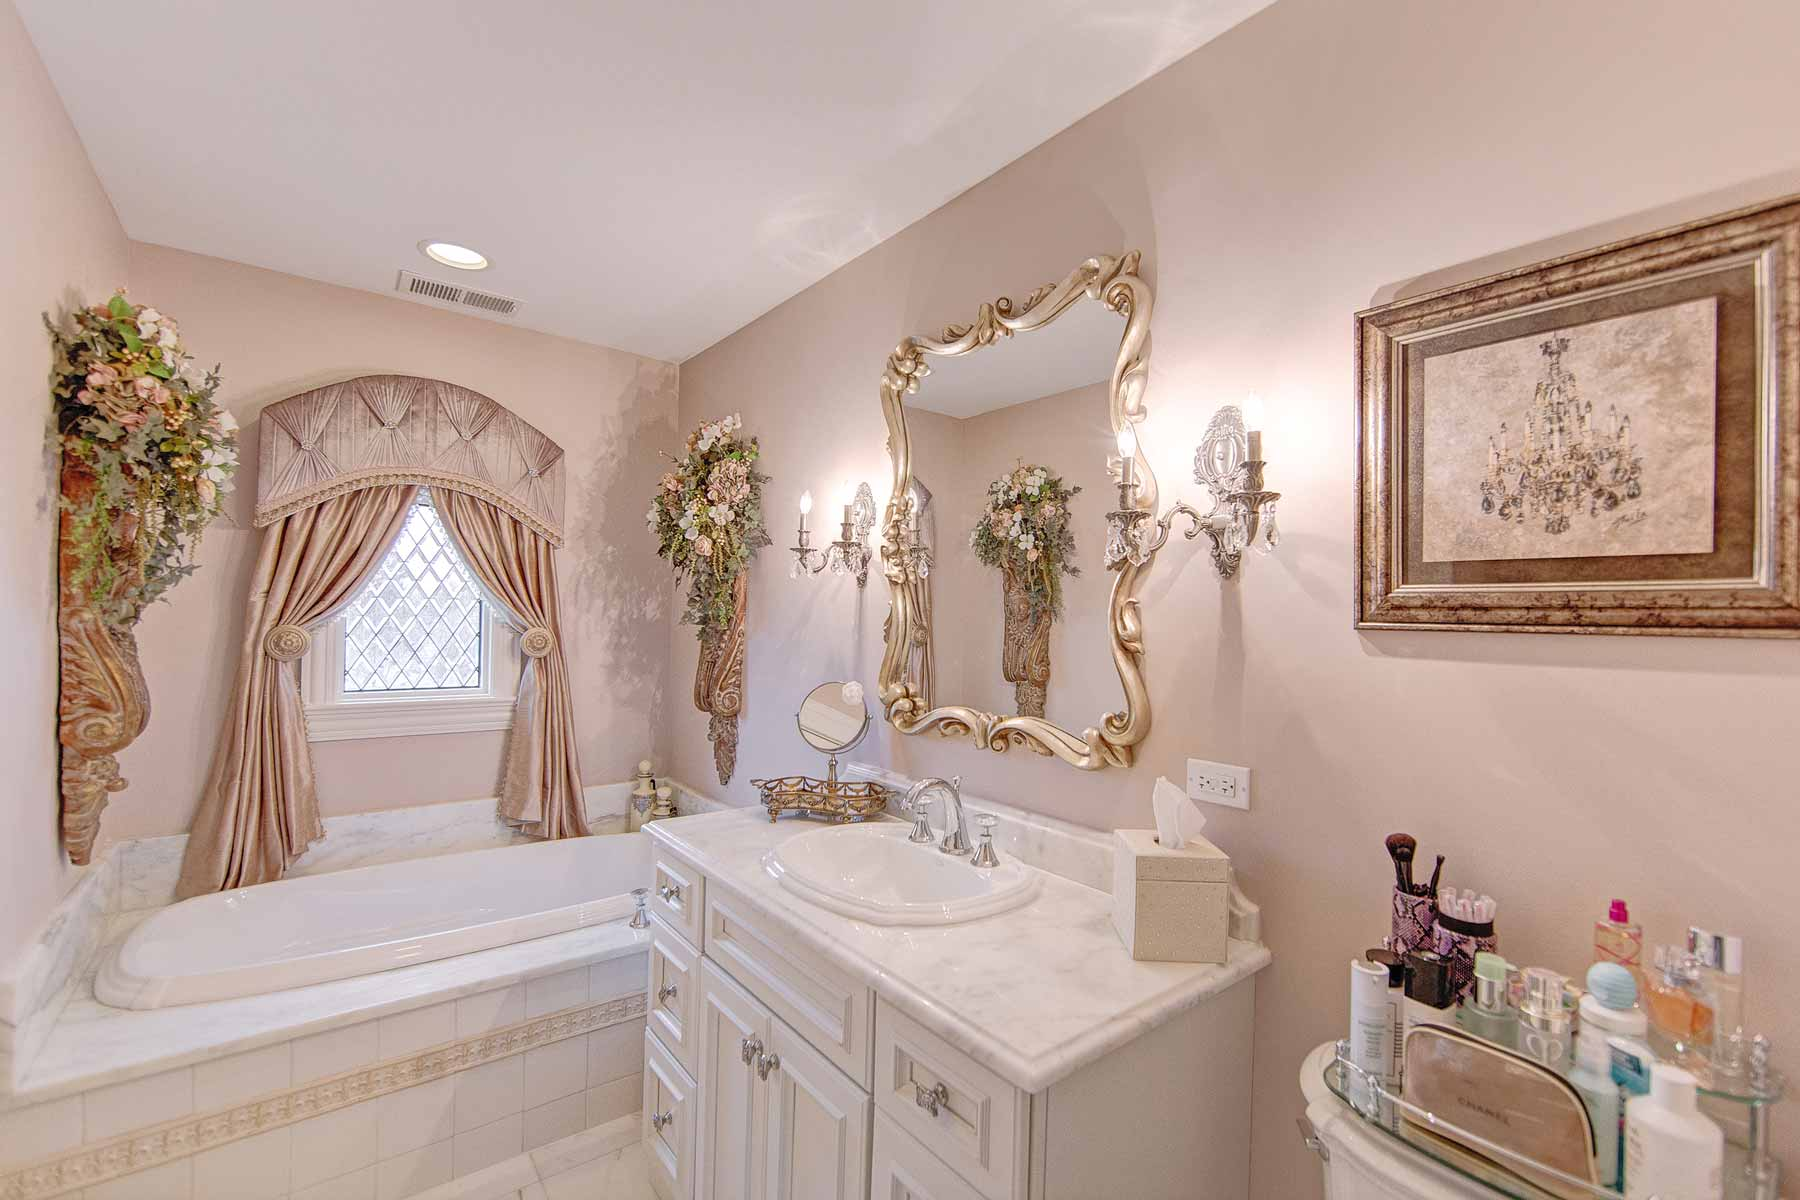 Bathroom for girls - Girl bathroom design ...